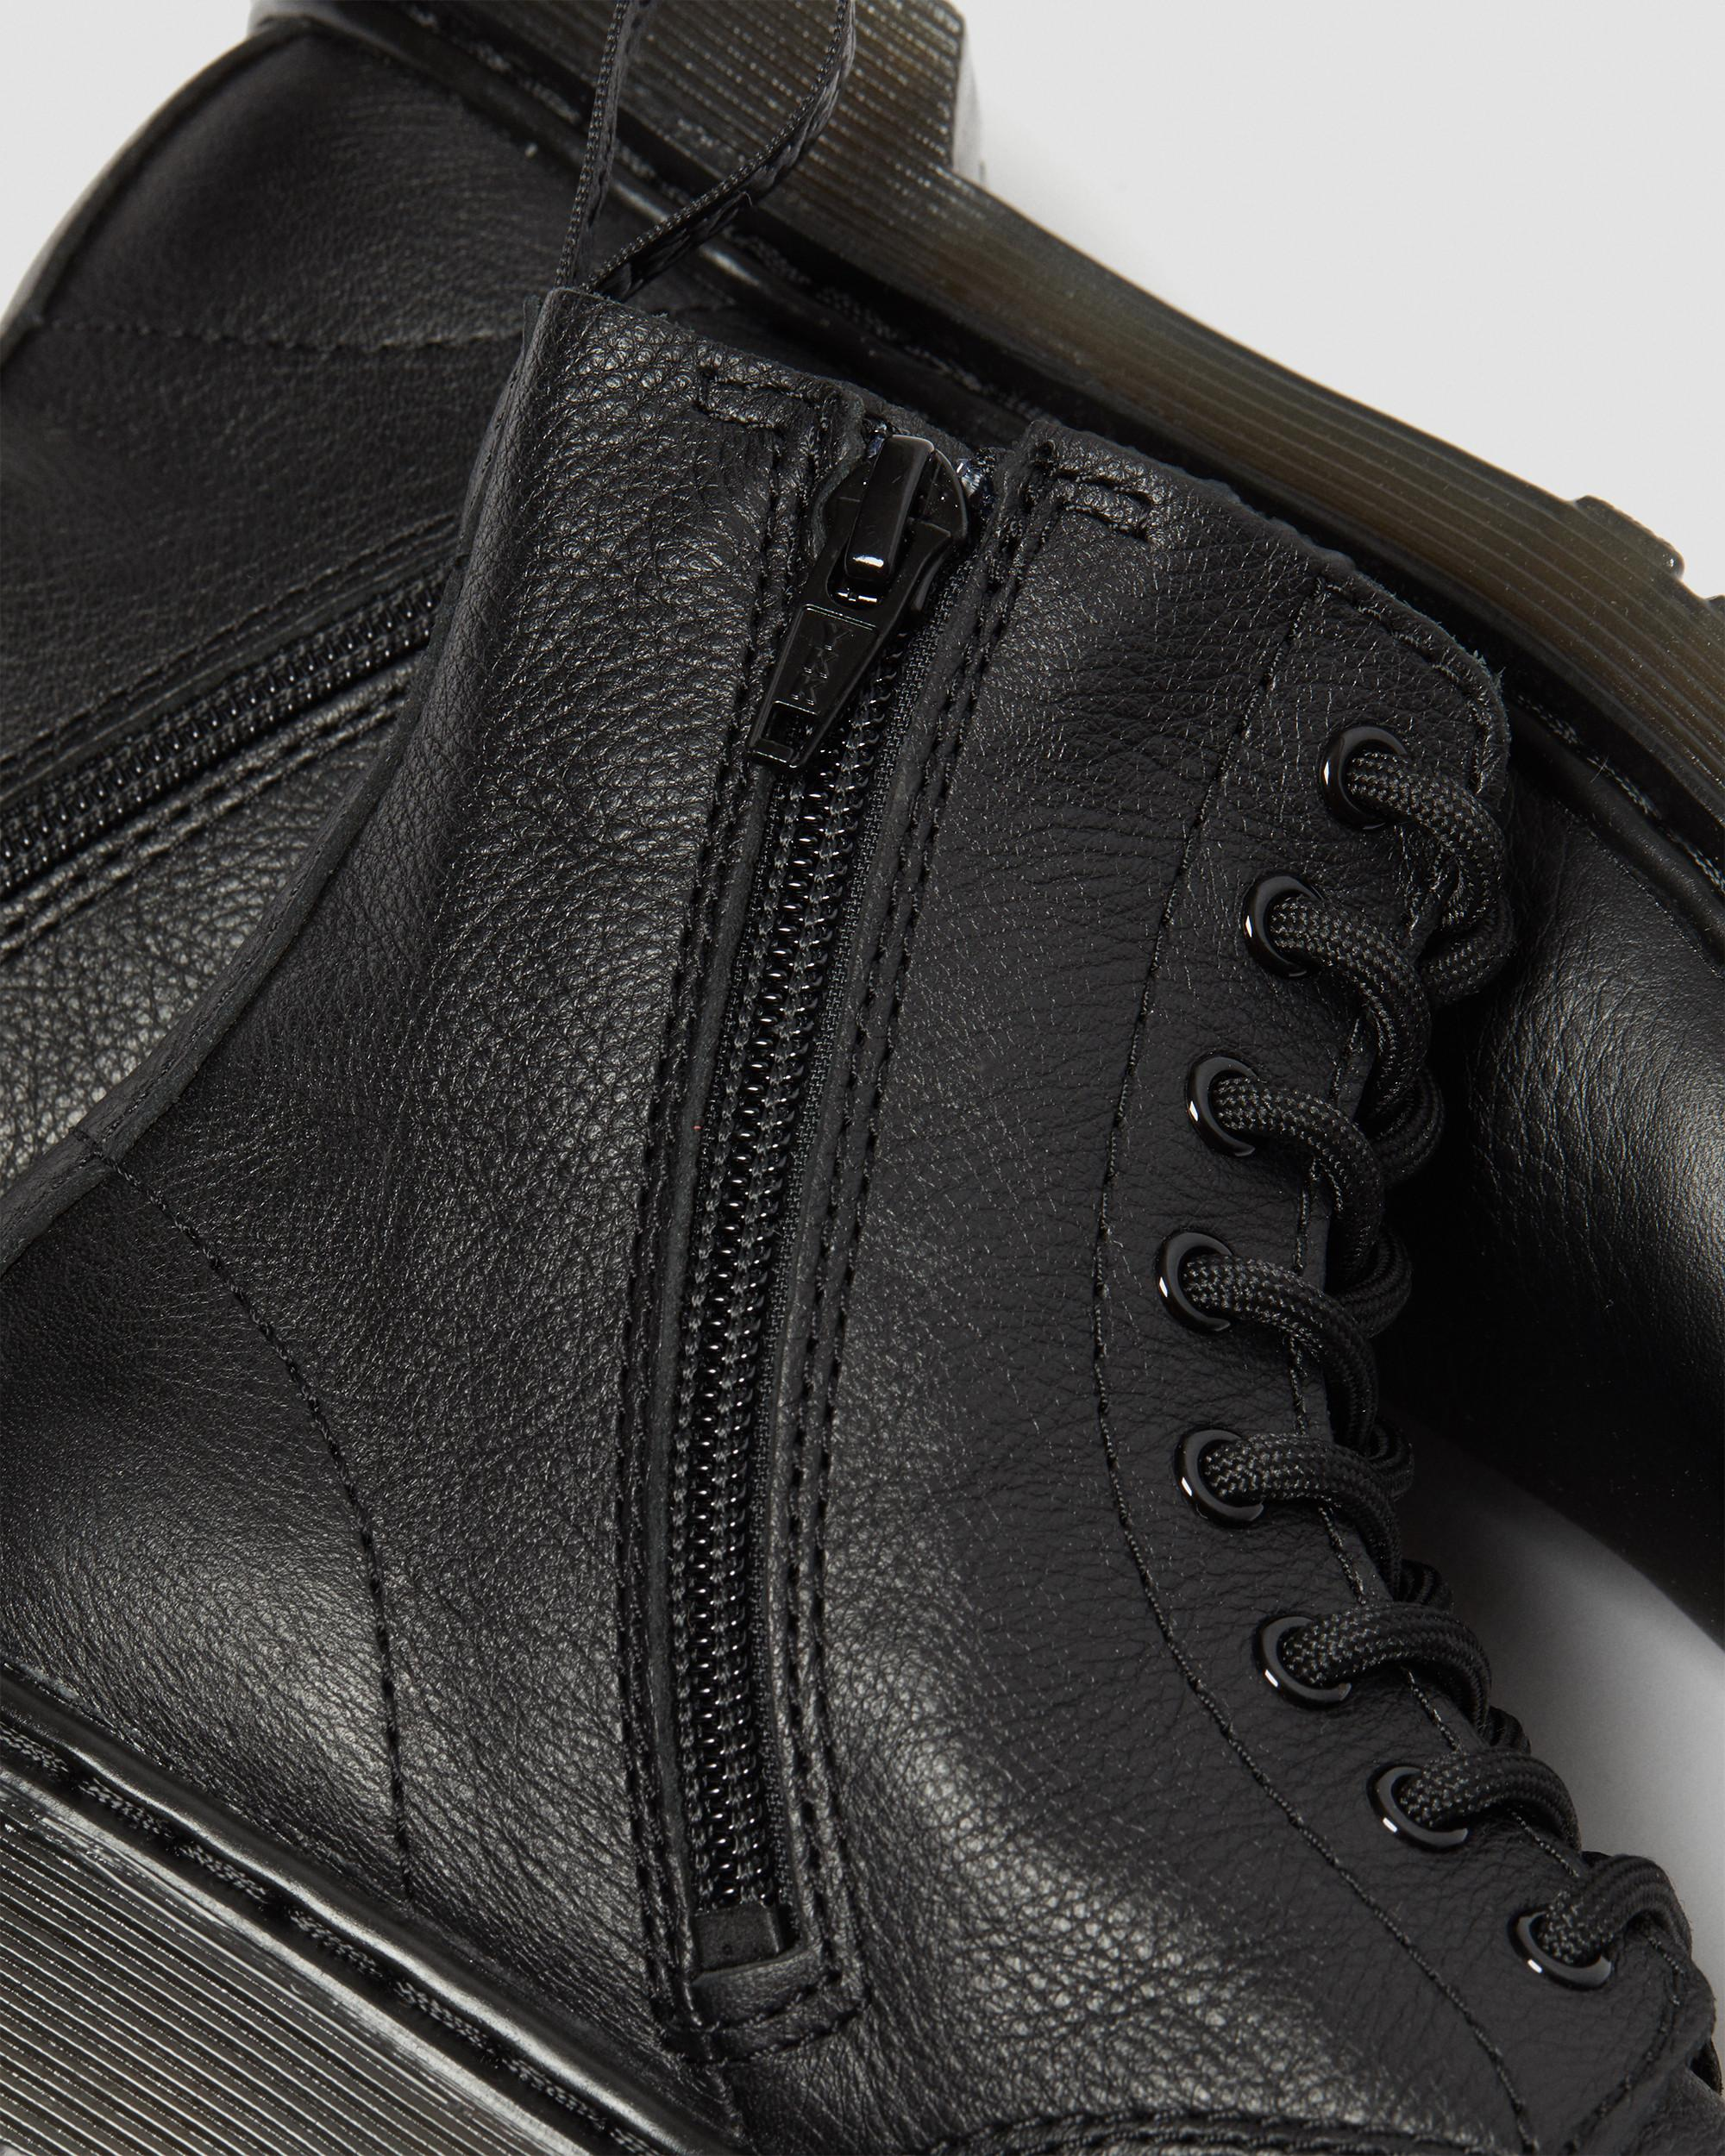 1460 PASCAL JUNIOR LEATHER ANKLE BOOTS